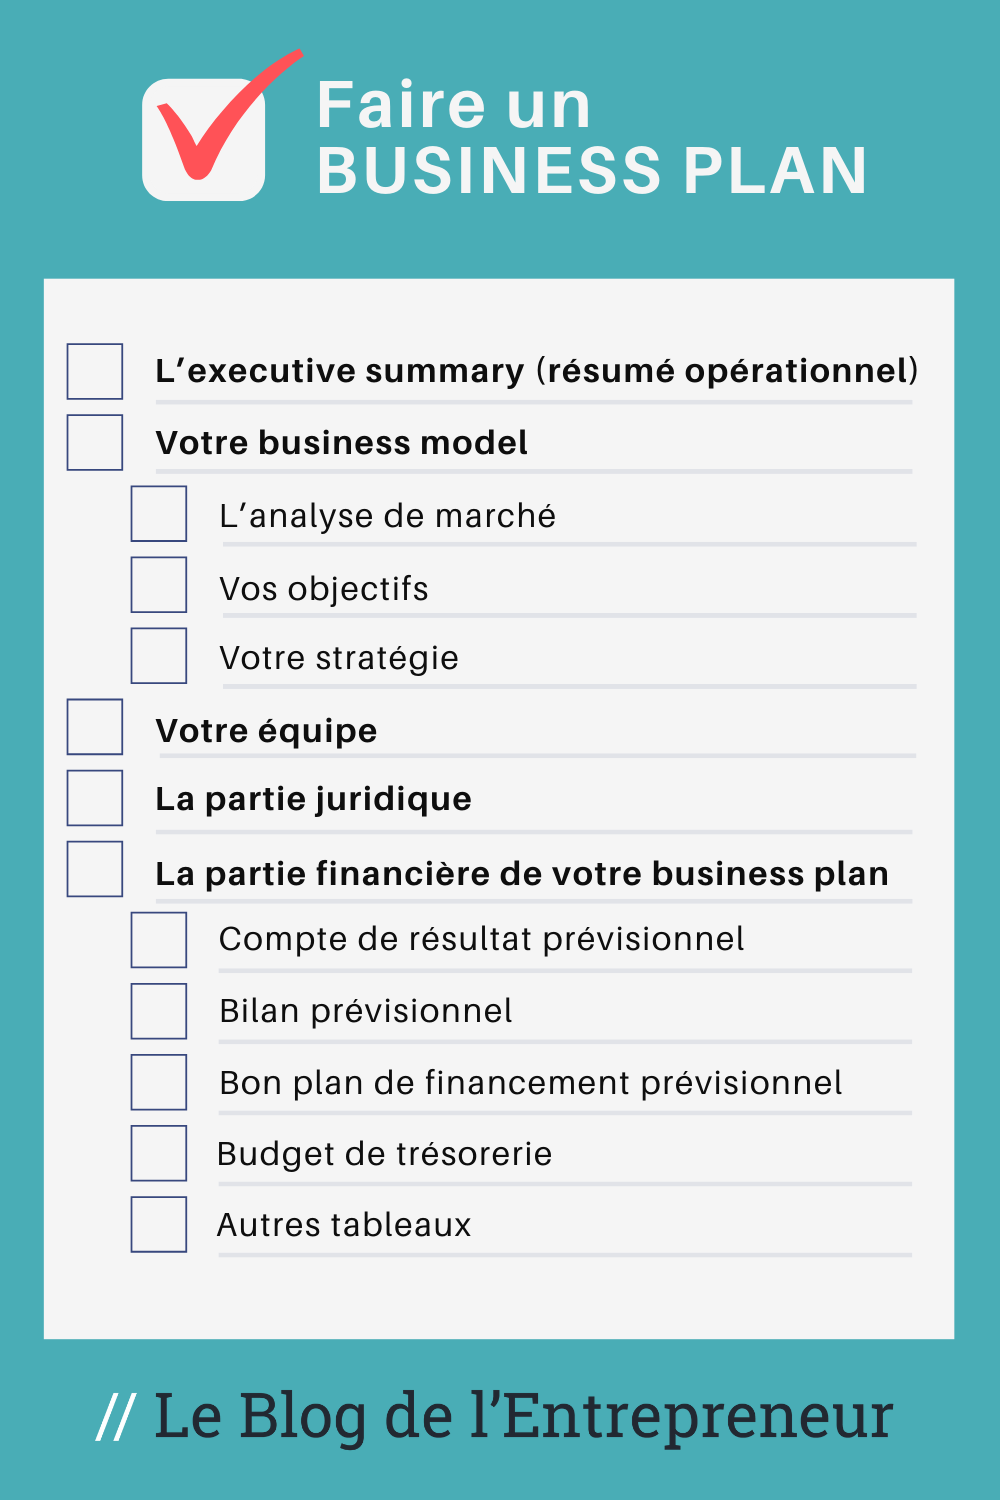 Todo List faire un business plan en 2020 Projets d